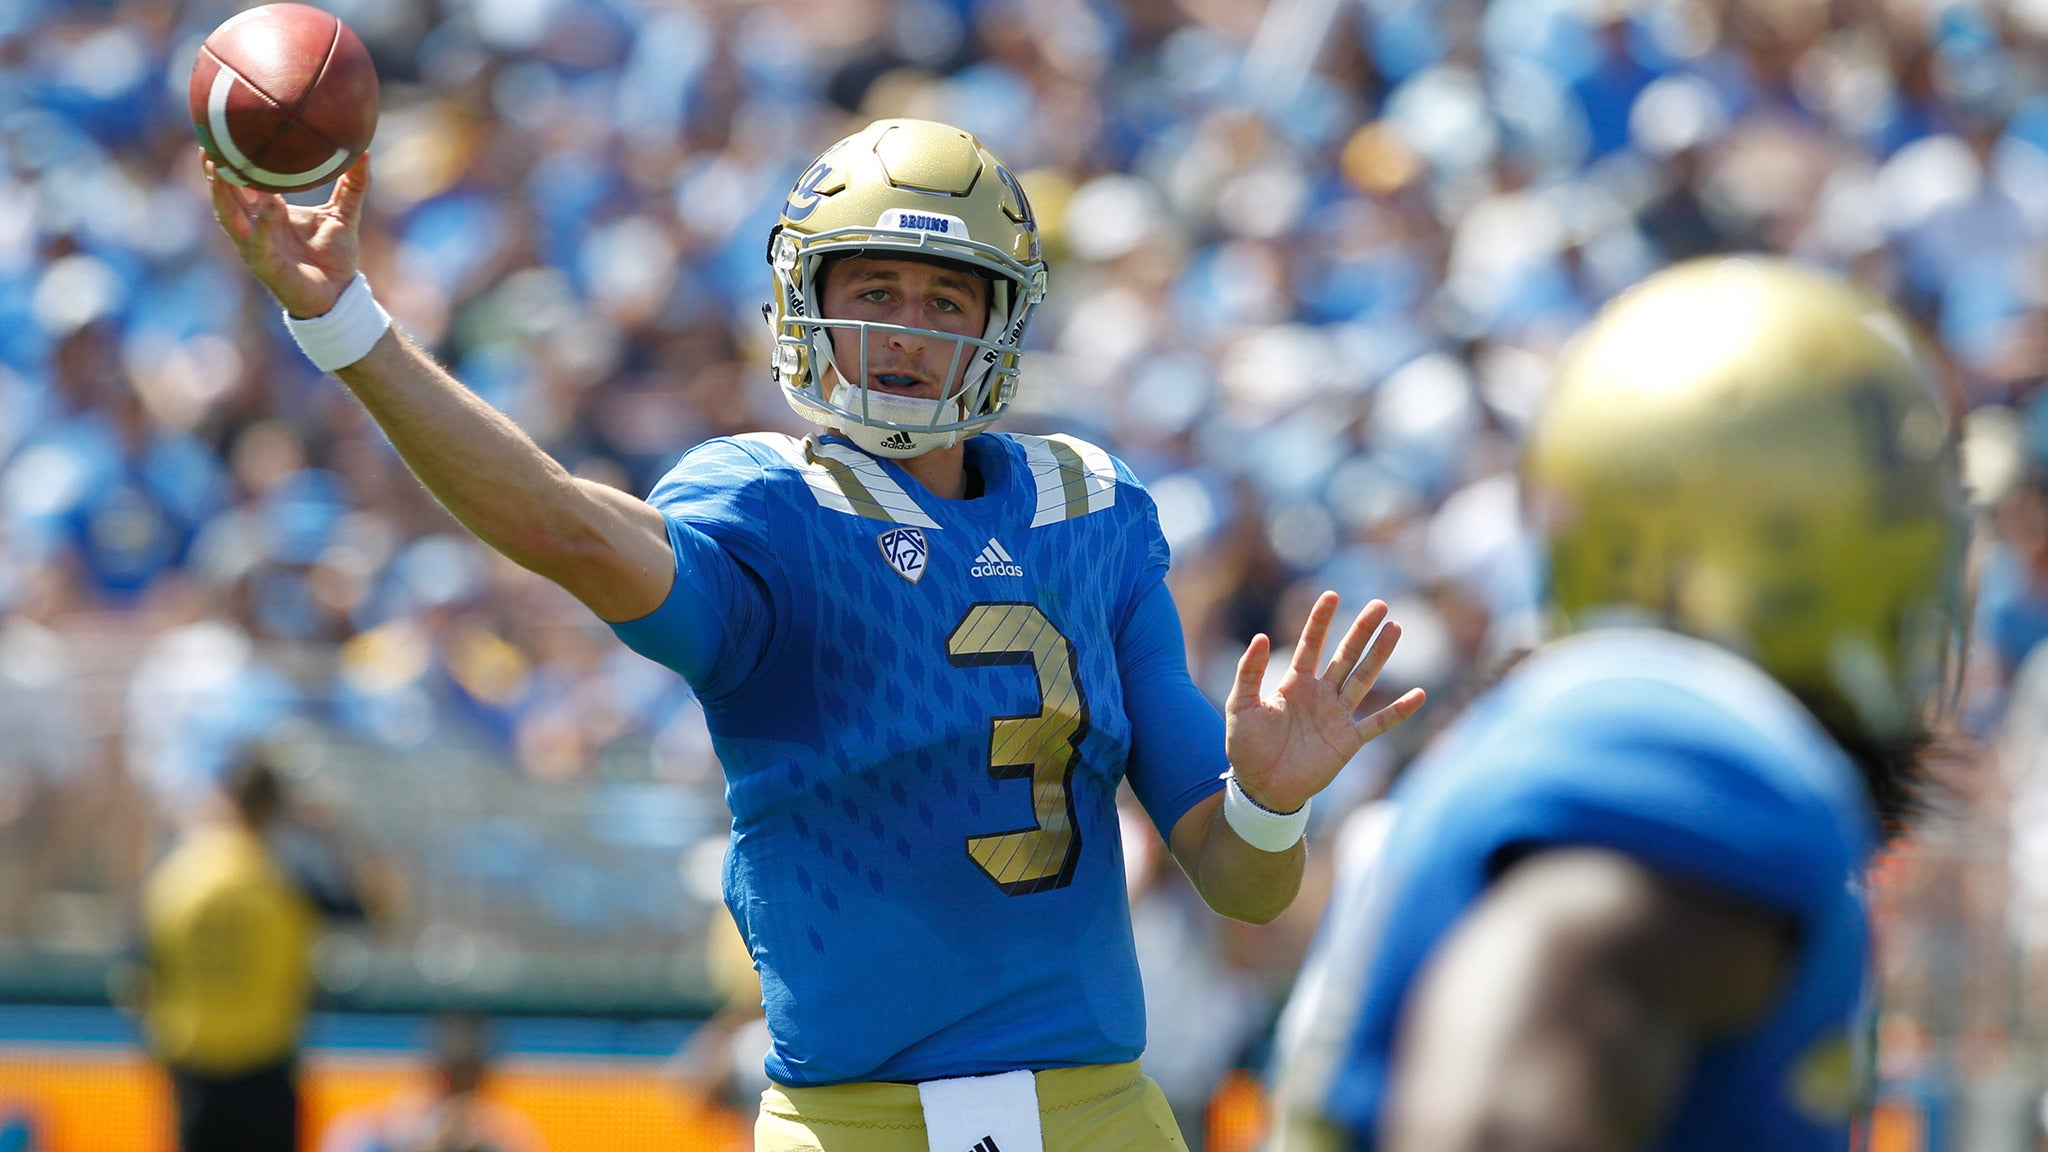 UCLA Bruins Football vs. University of California Football